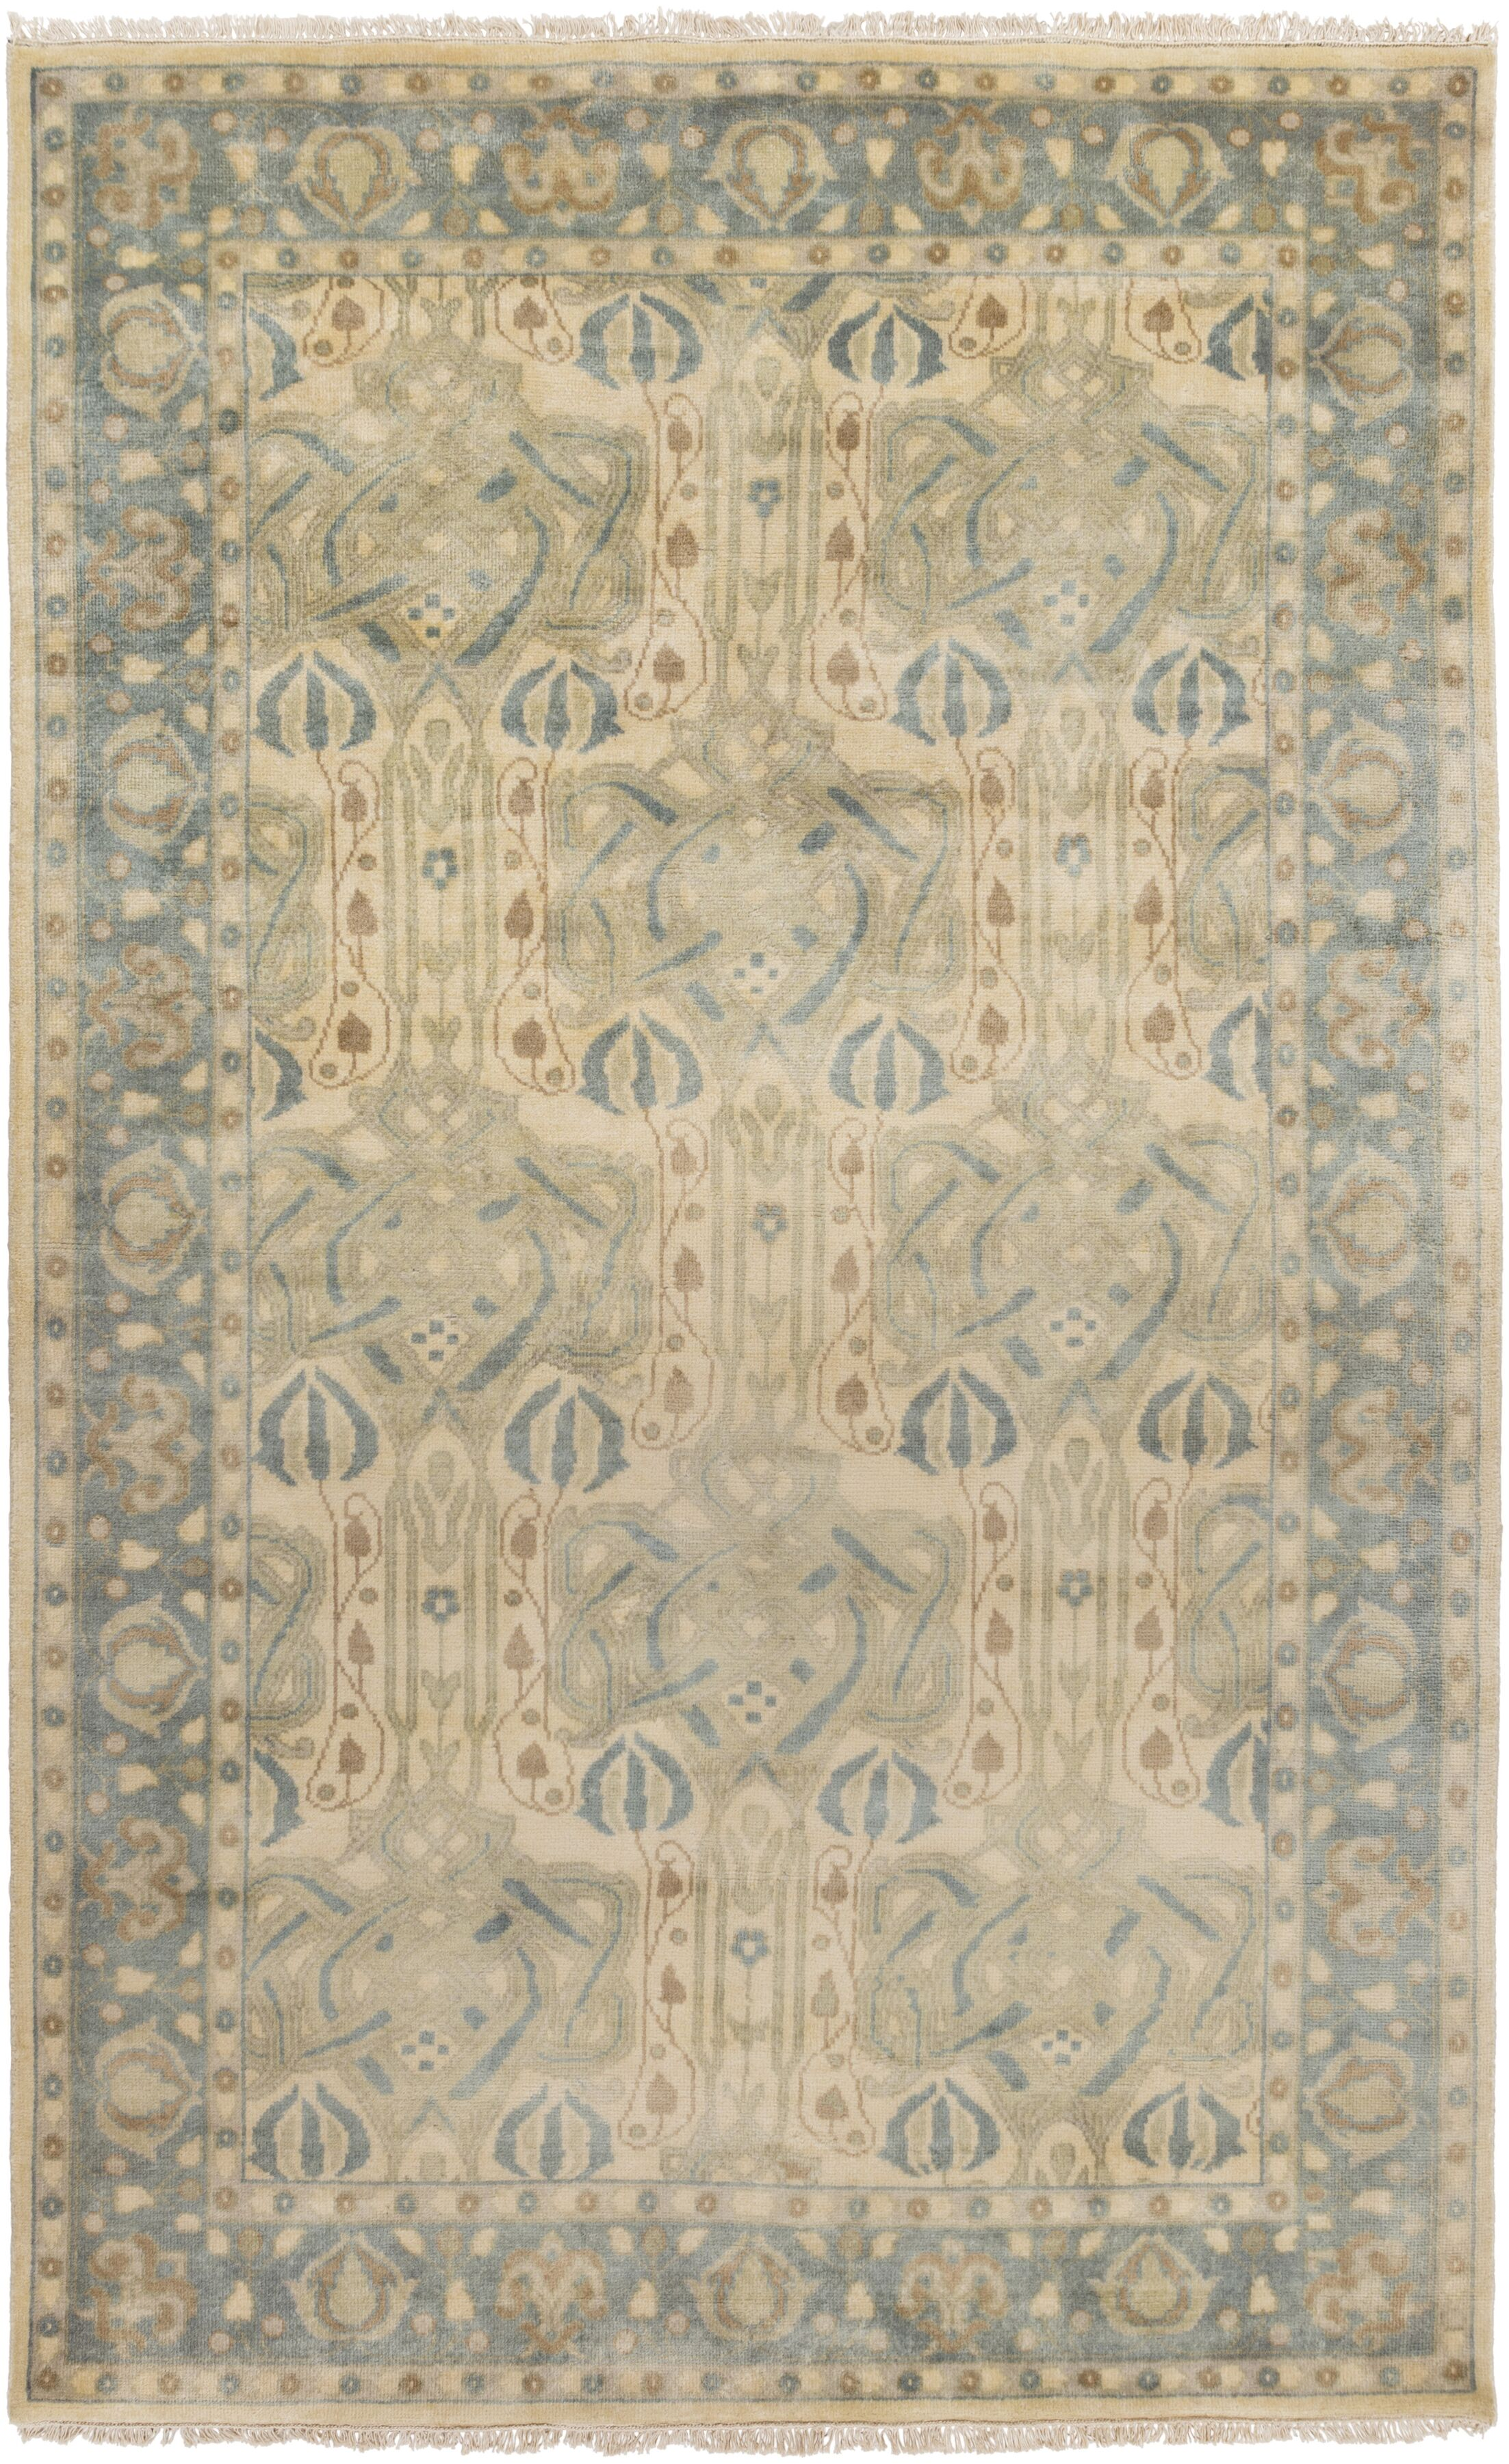 Nevins Light Gray/Moss Area Rug Rug Size: Rectangle 2' x 3'